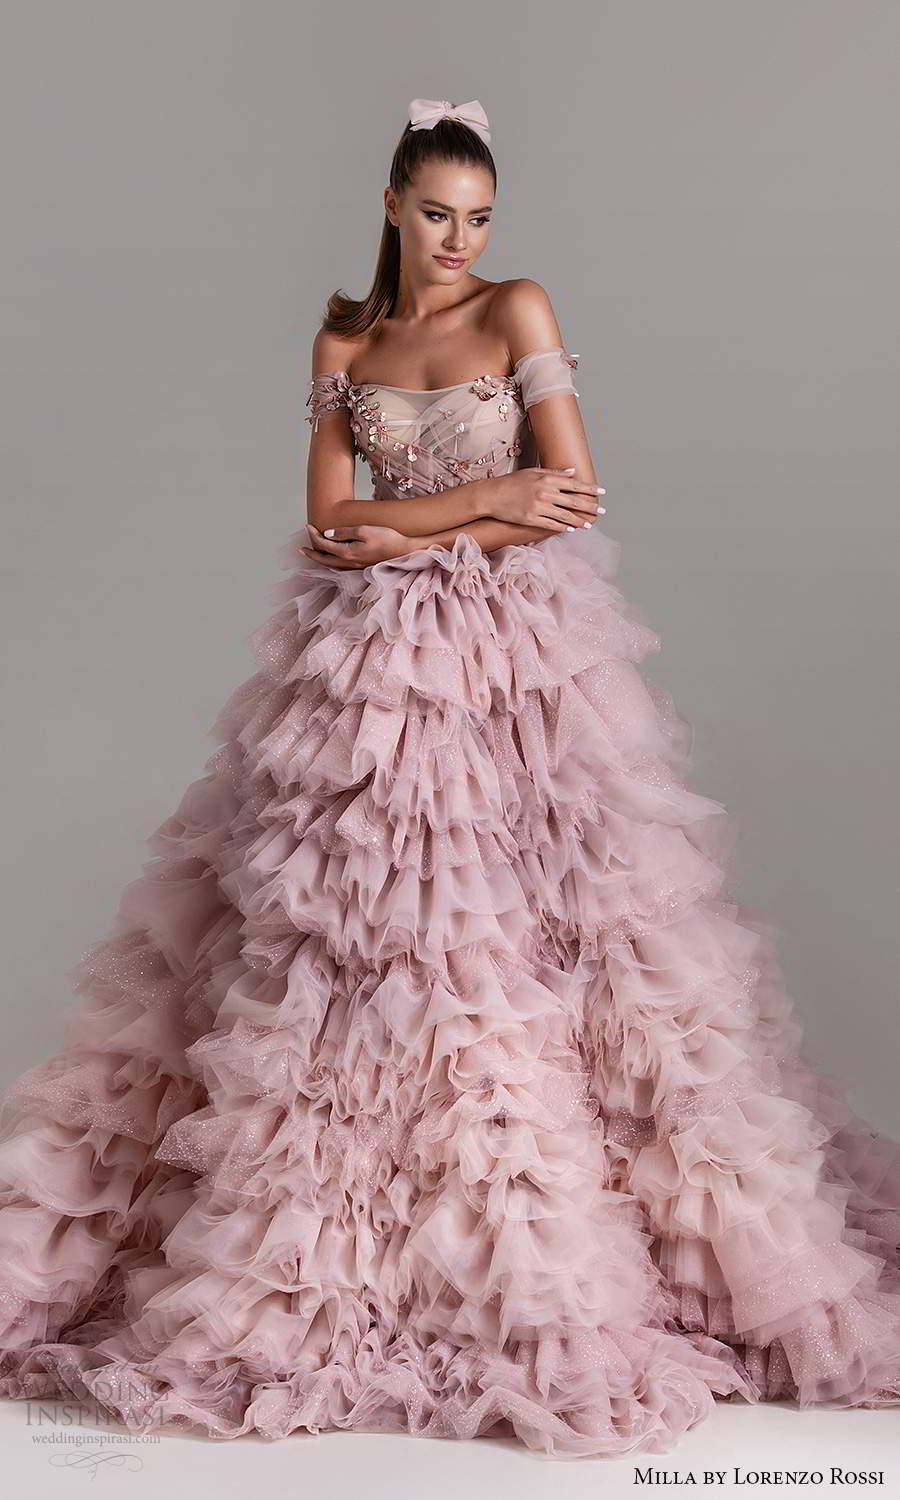 milla by lorenzo rossi 2020 rtw off shoulder straps sweetheart neckline embellished bodice a line ball gown wedding dress ruffle skirt lavender pink (15) mv